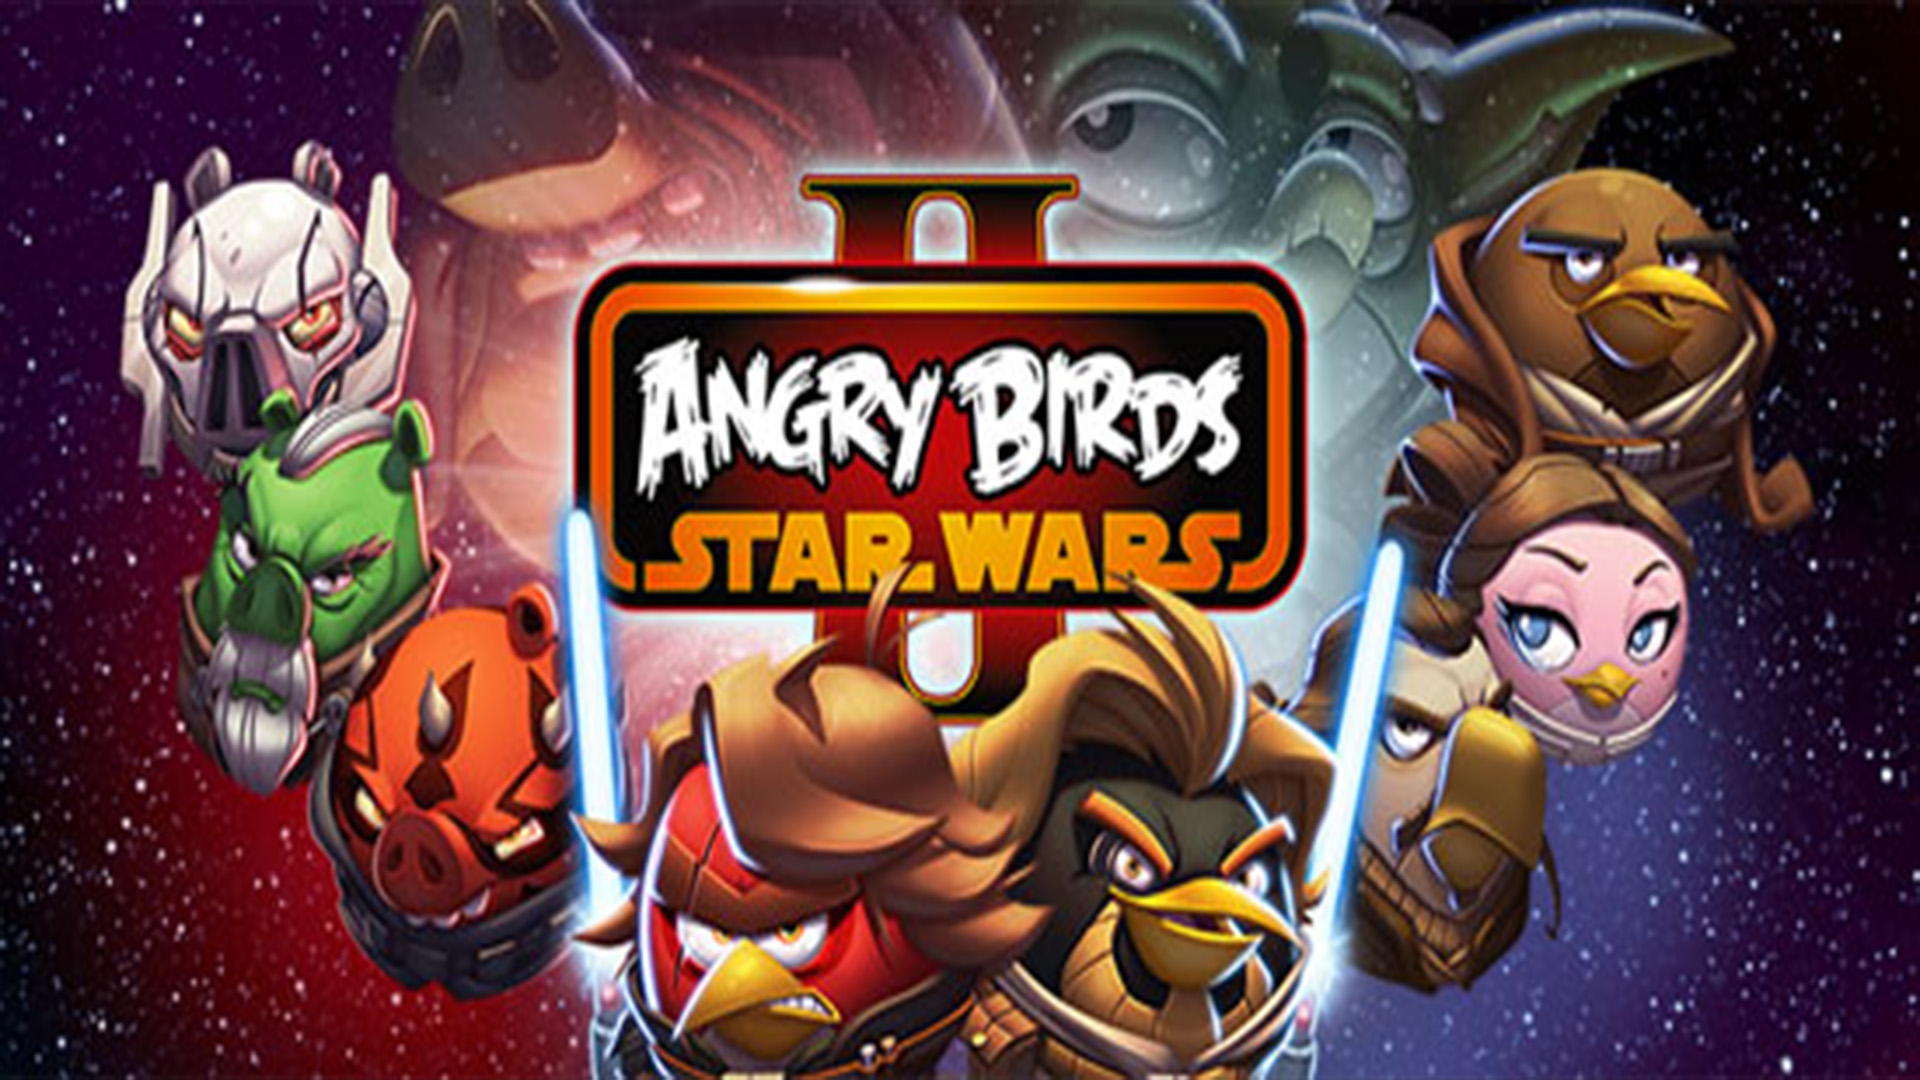 Angry Birds: Star Wars 2 Details - LaunchBox Games Database